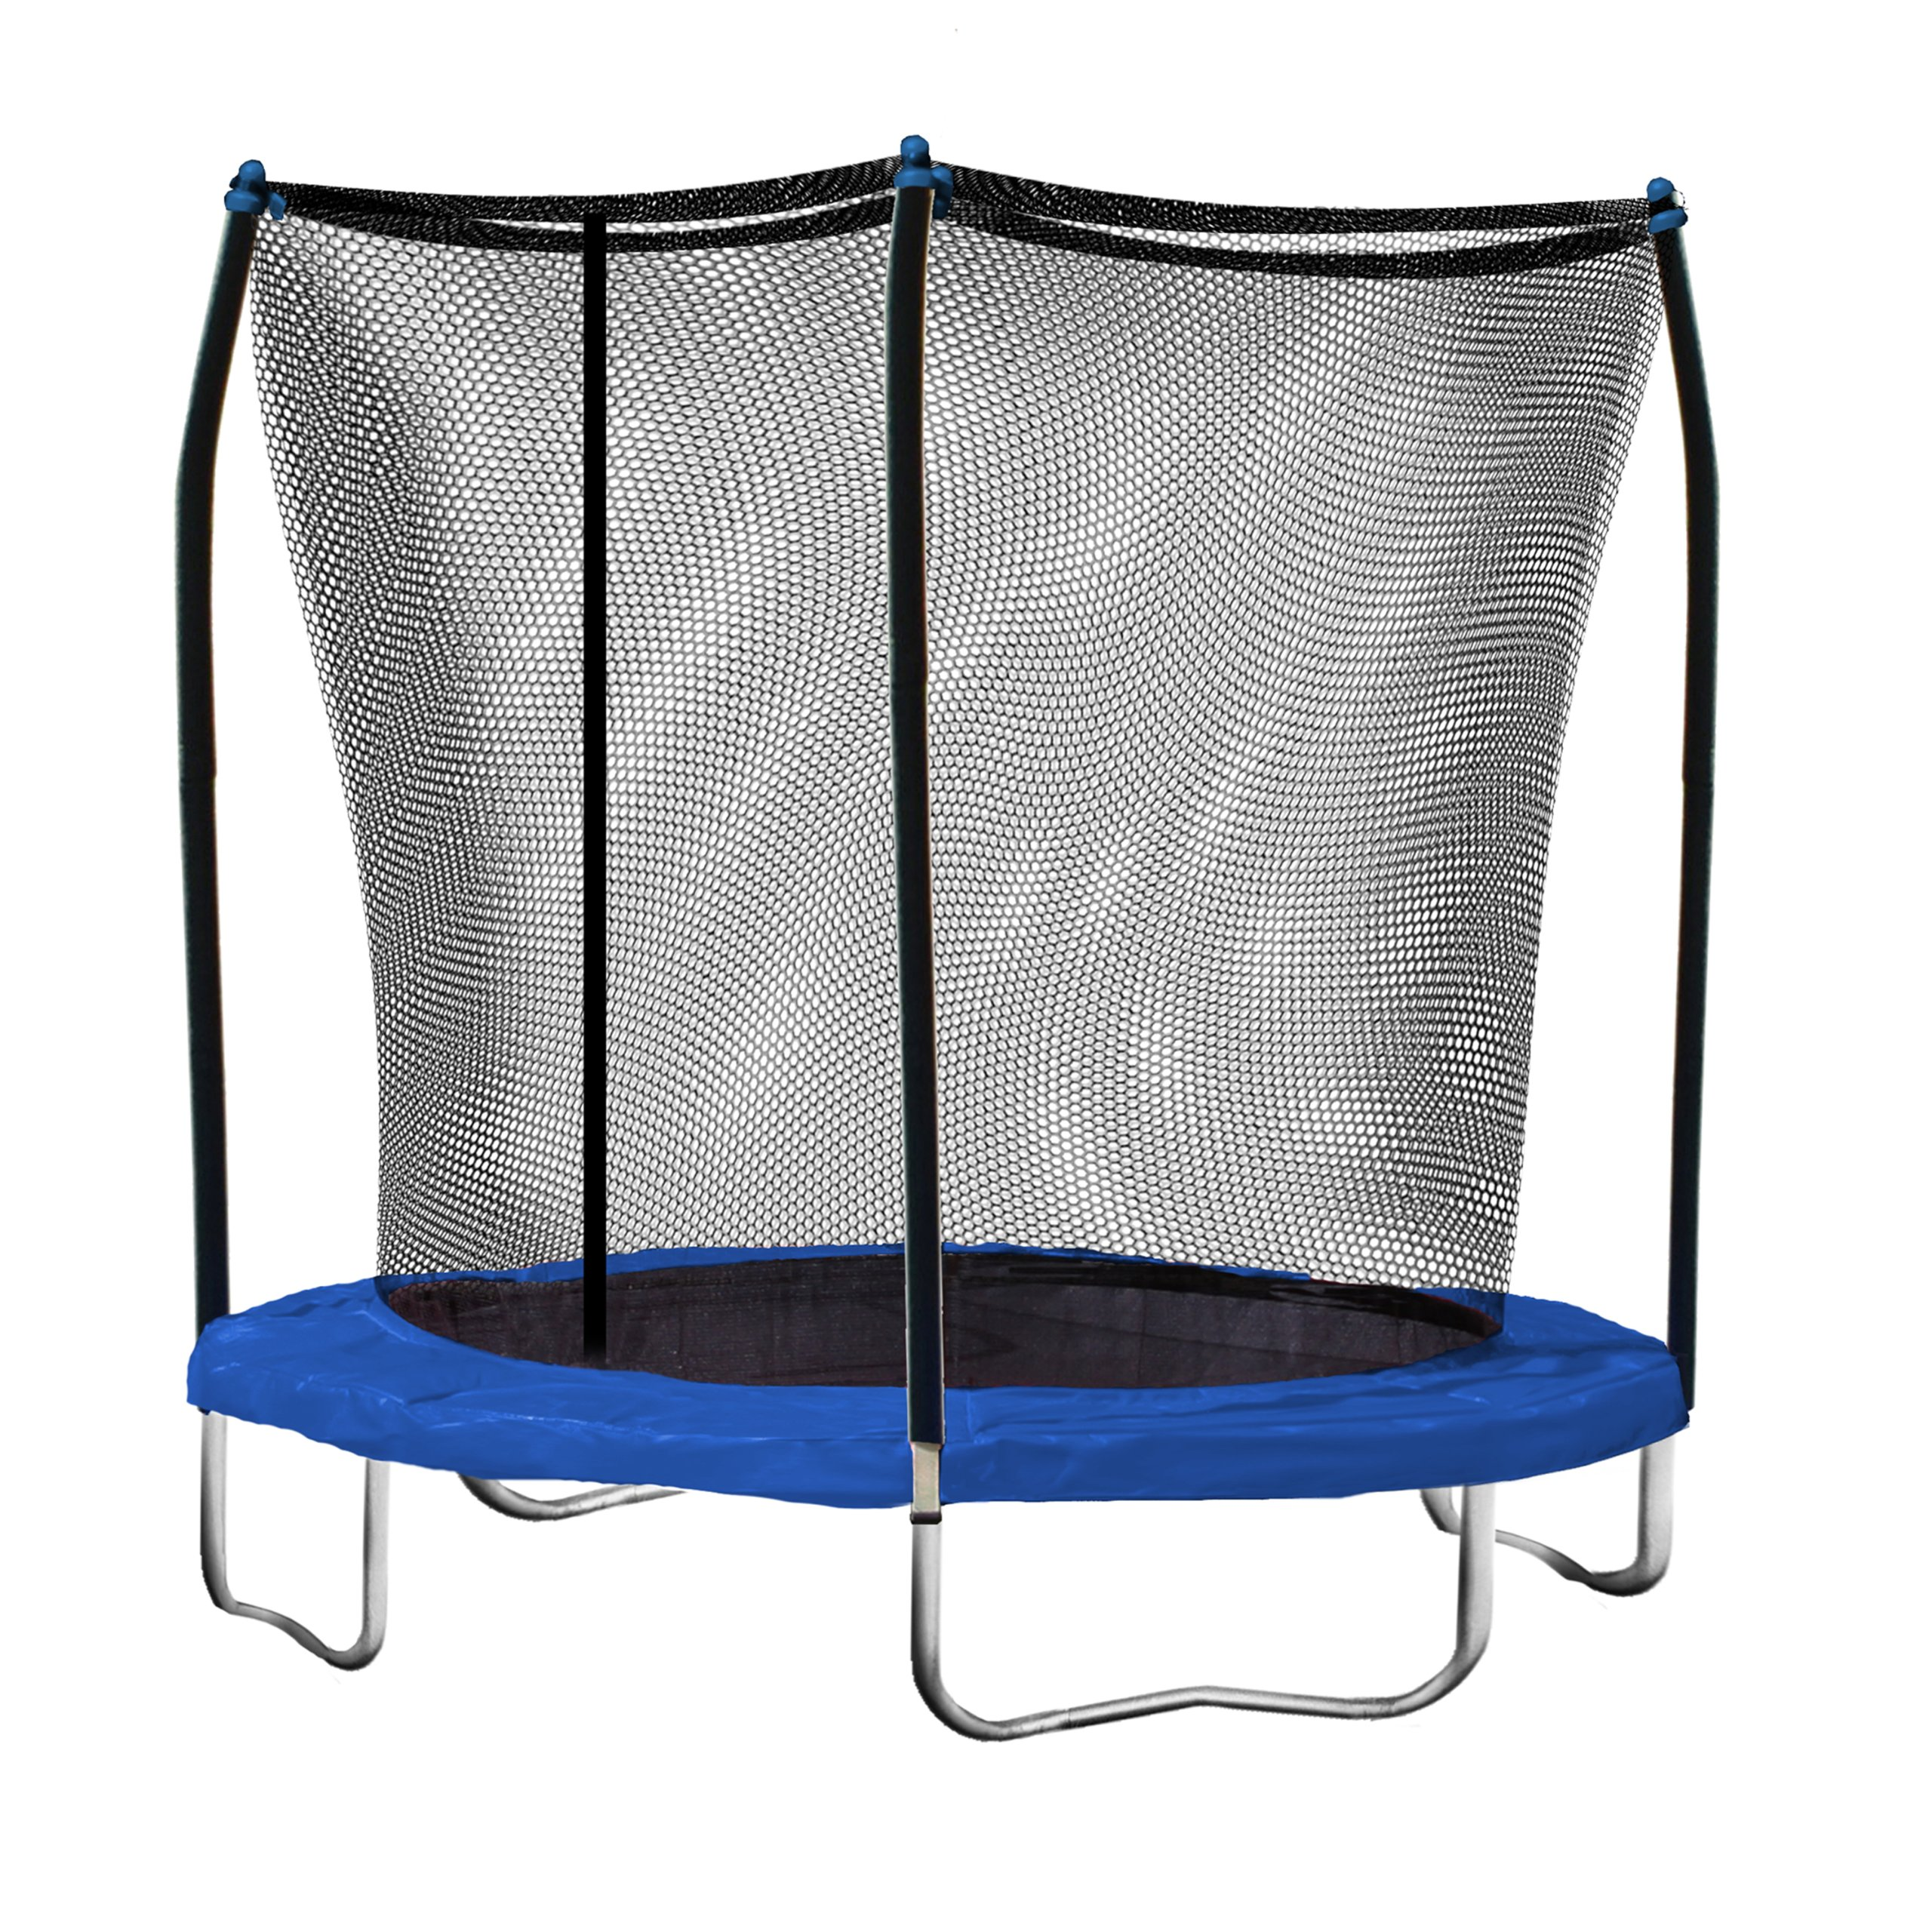 Skywalker Trampolines 8 Ft. Round Trampoline and Enclosure with Blue Spring Pad by Skywalker Trampolines